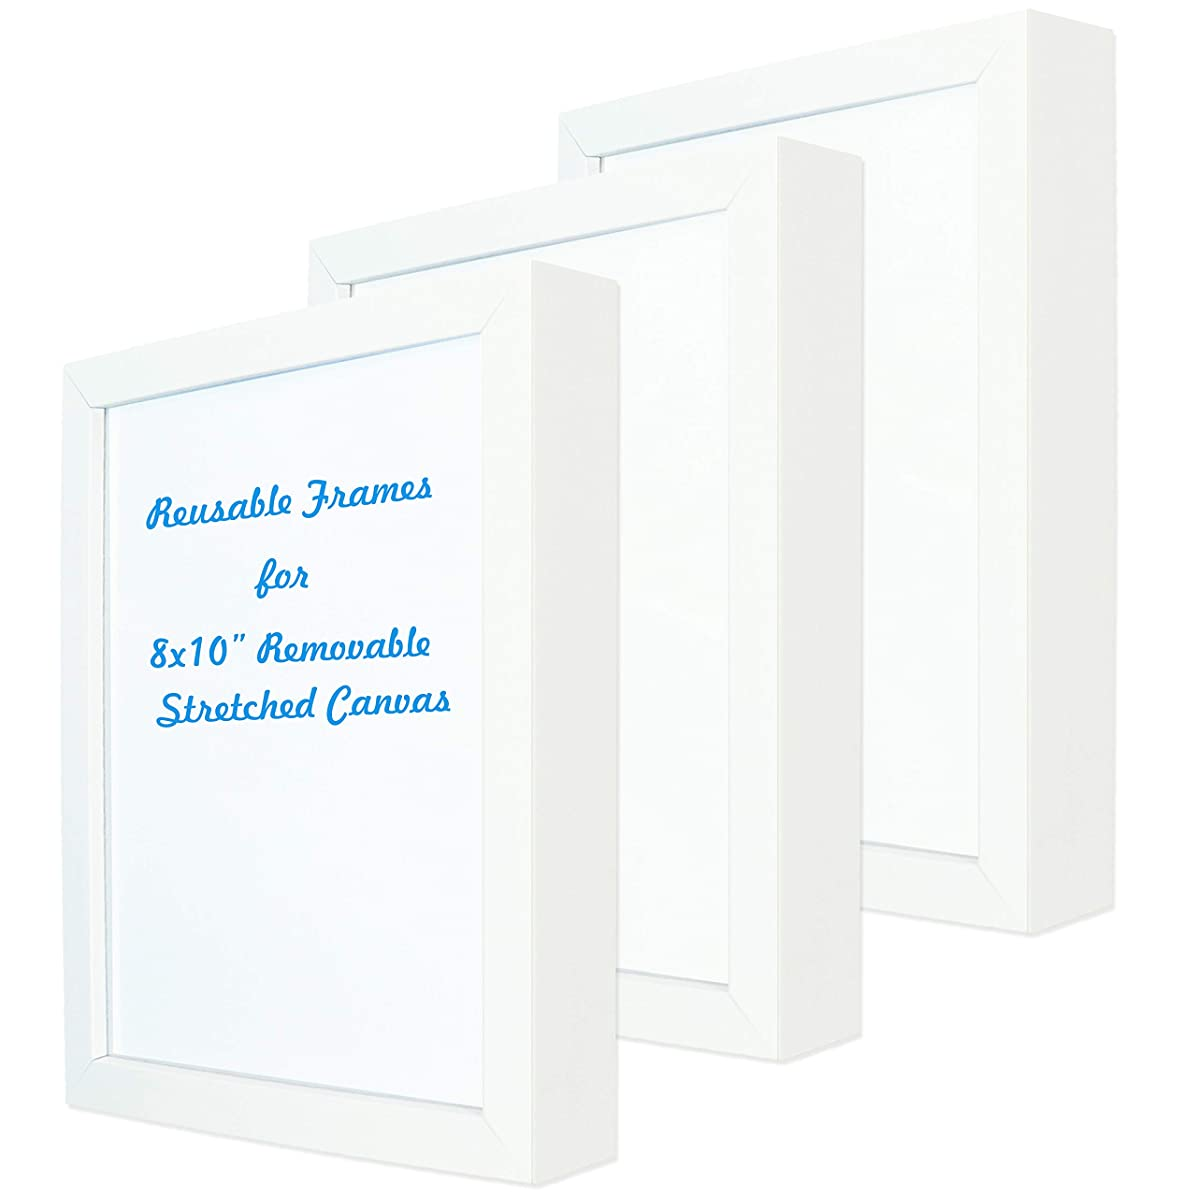 Natural art 8x10 Inch Removable Stretched Canvas with Reusable Frames Pack of 3 for Paintings White